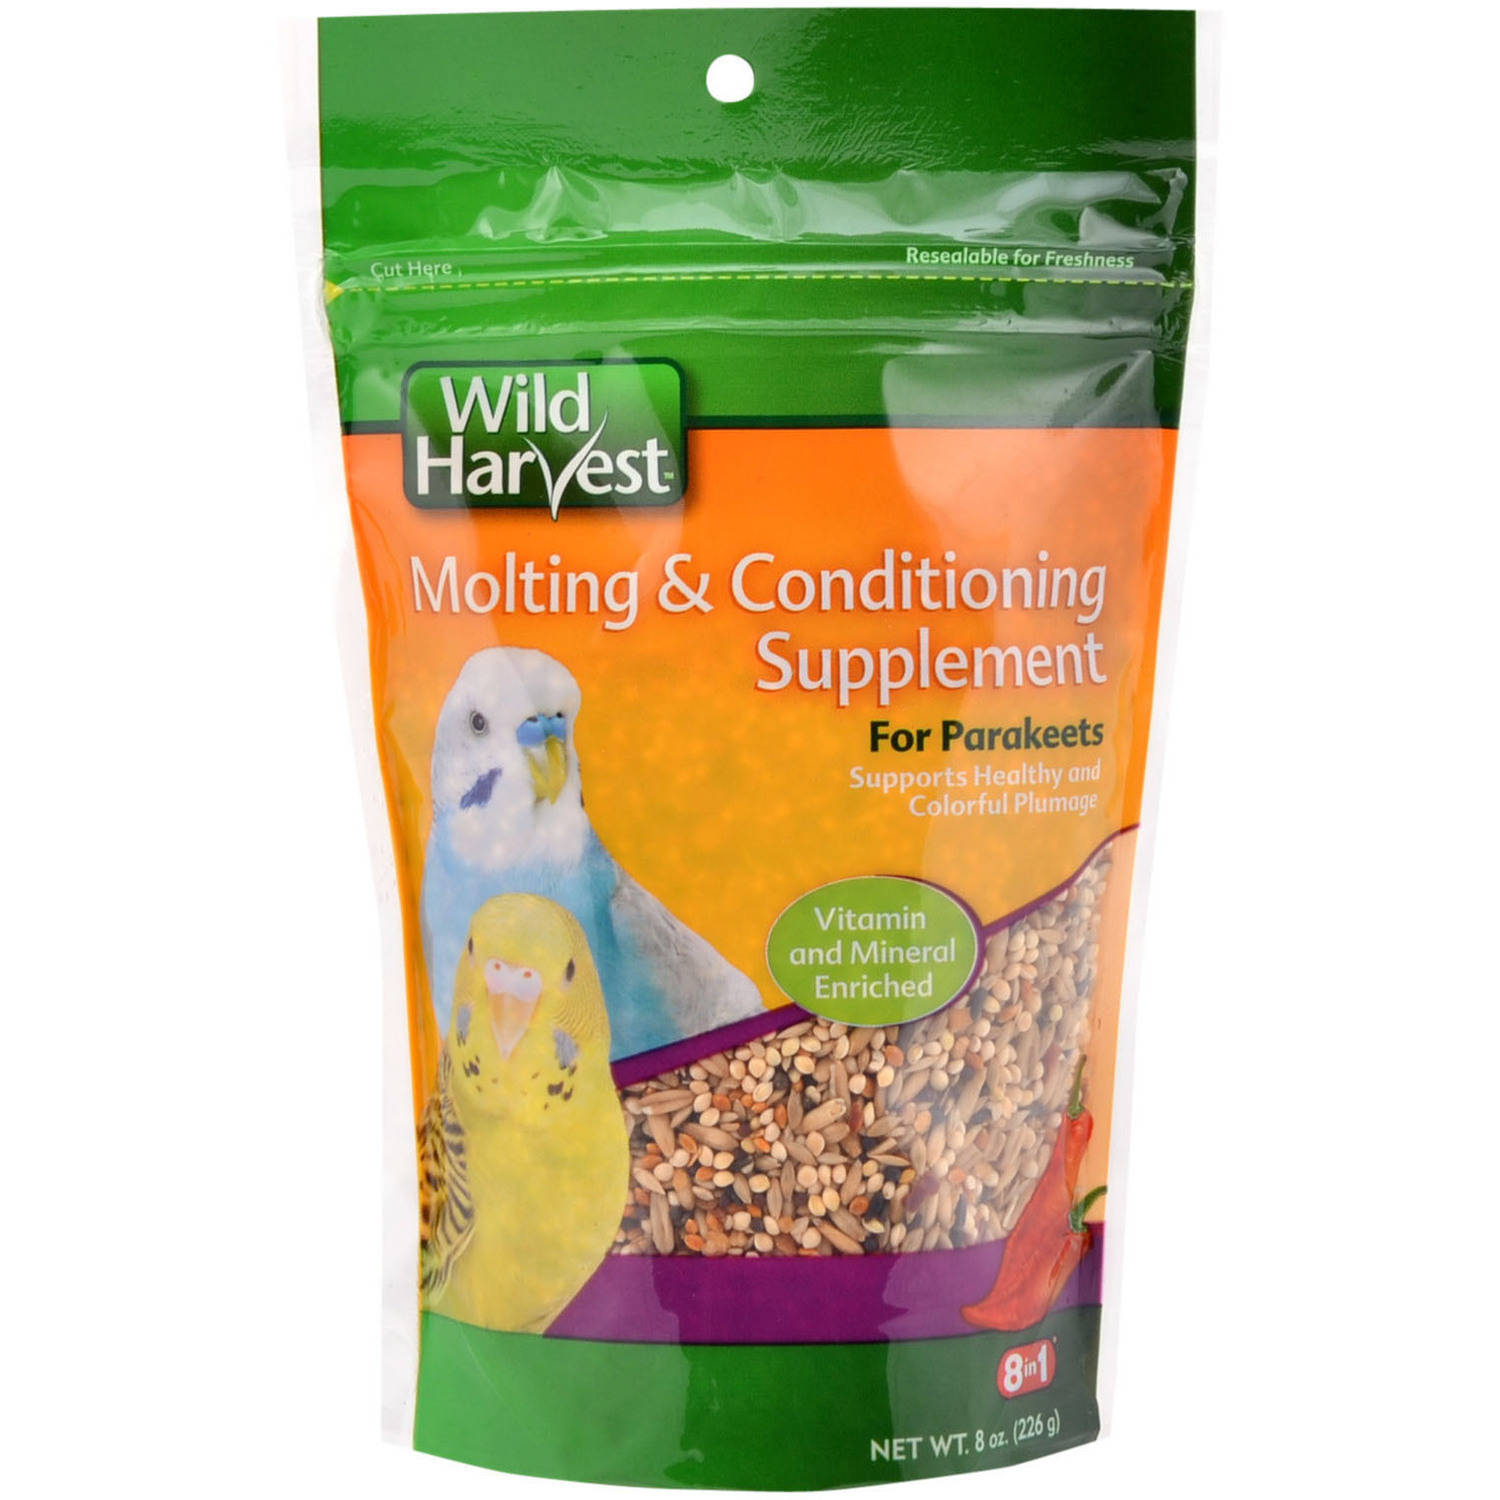 Wild Harvest Molting and Conditioning Supplements for Parakeets